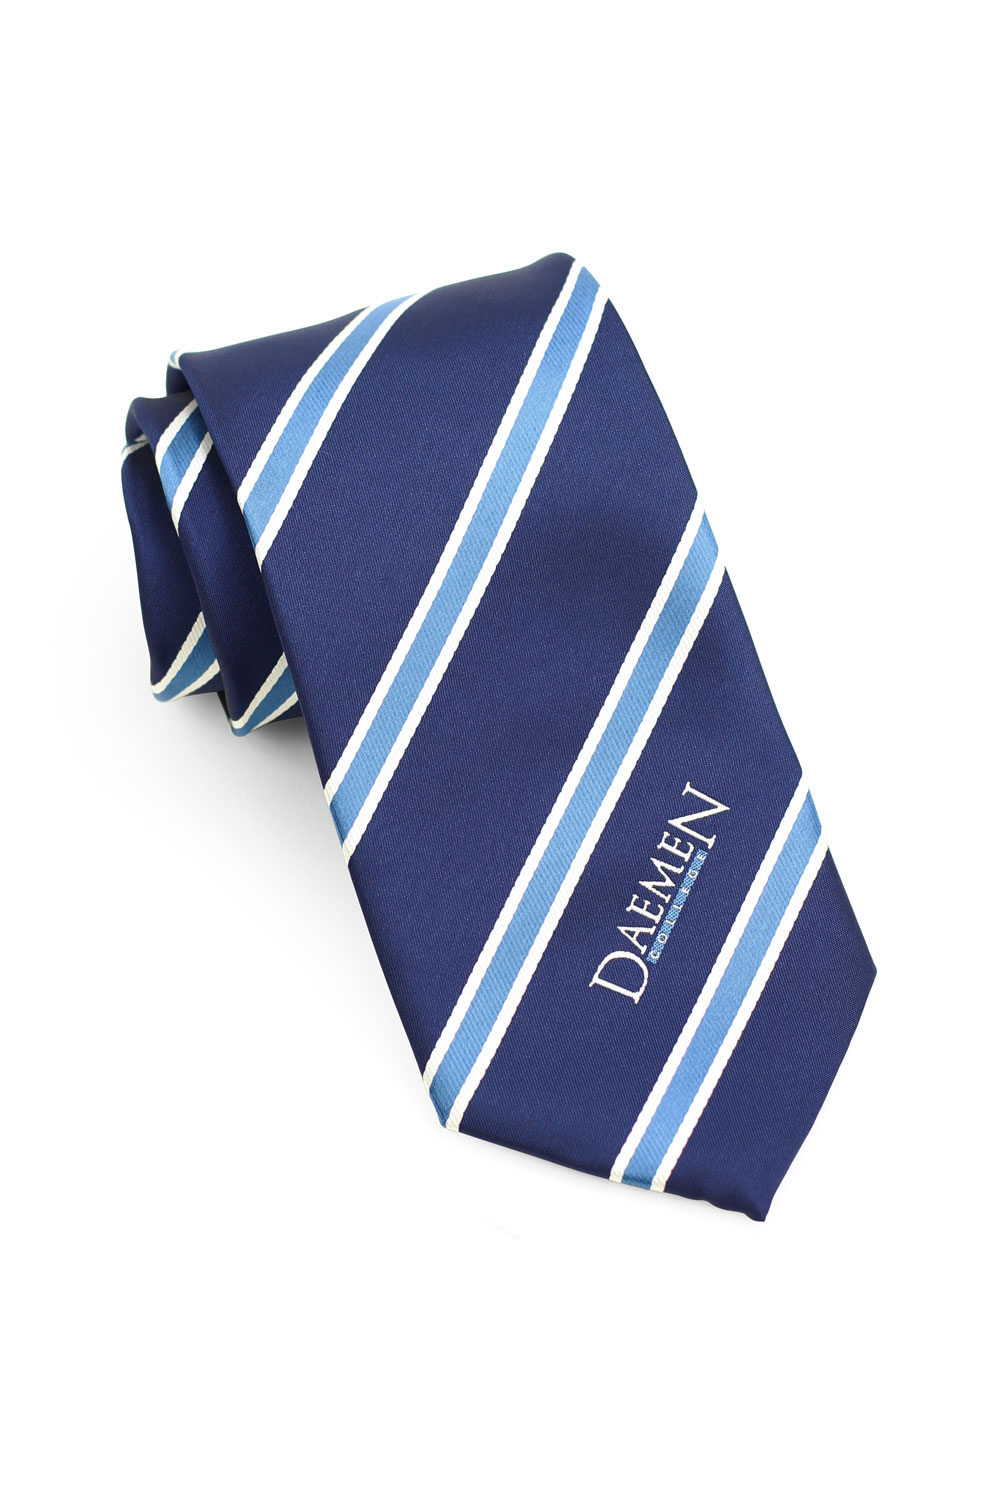 custom school ties No minimum order create custom ties for your school or business choose from  our 12 designs, we'll customize your with logo and colors budget-friendly.